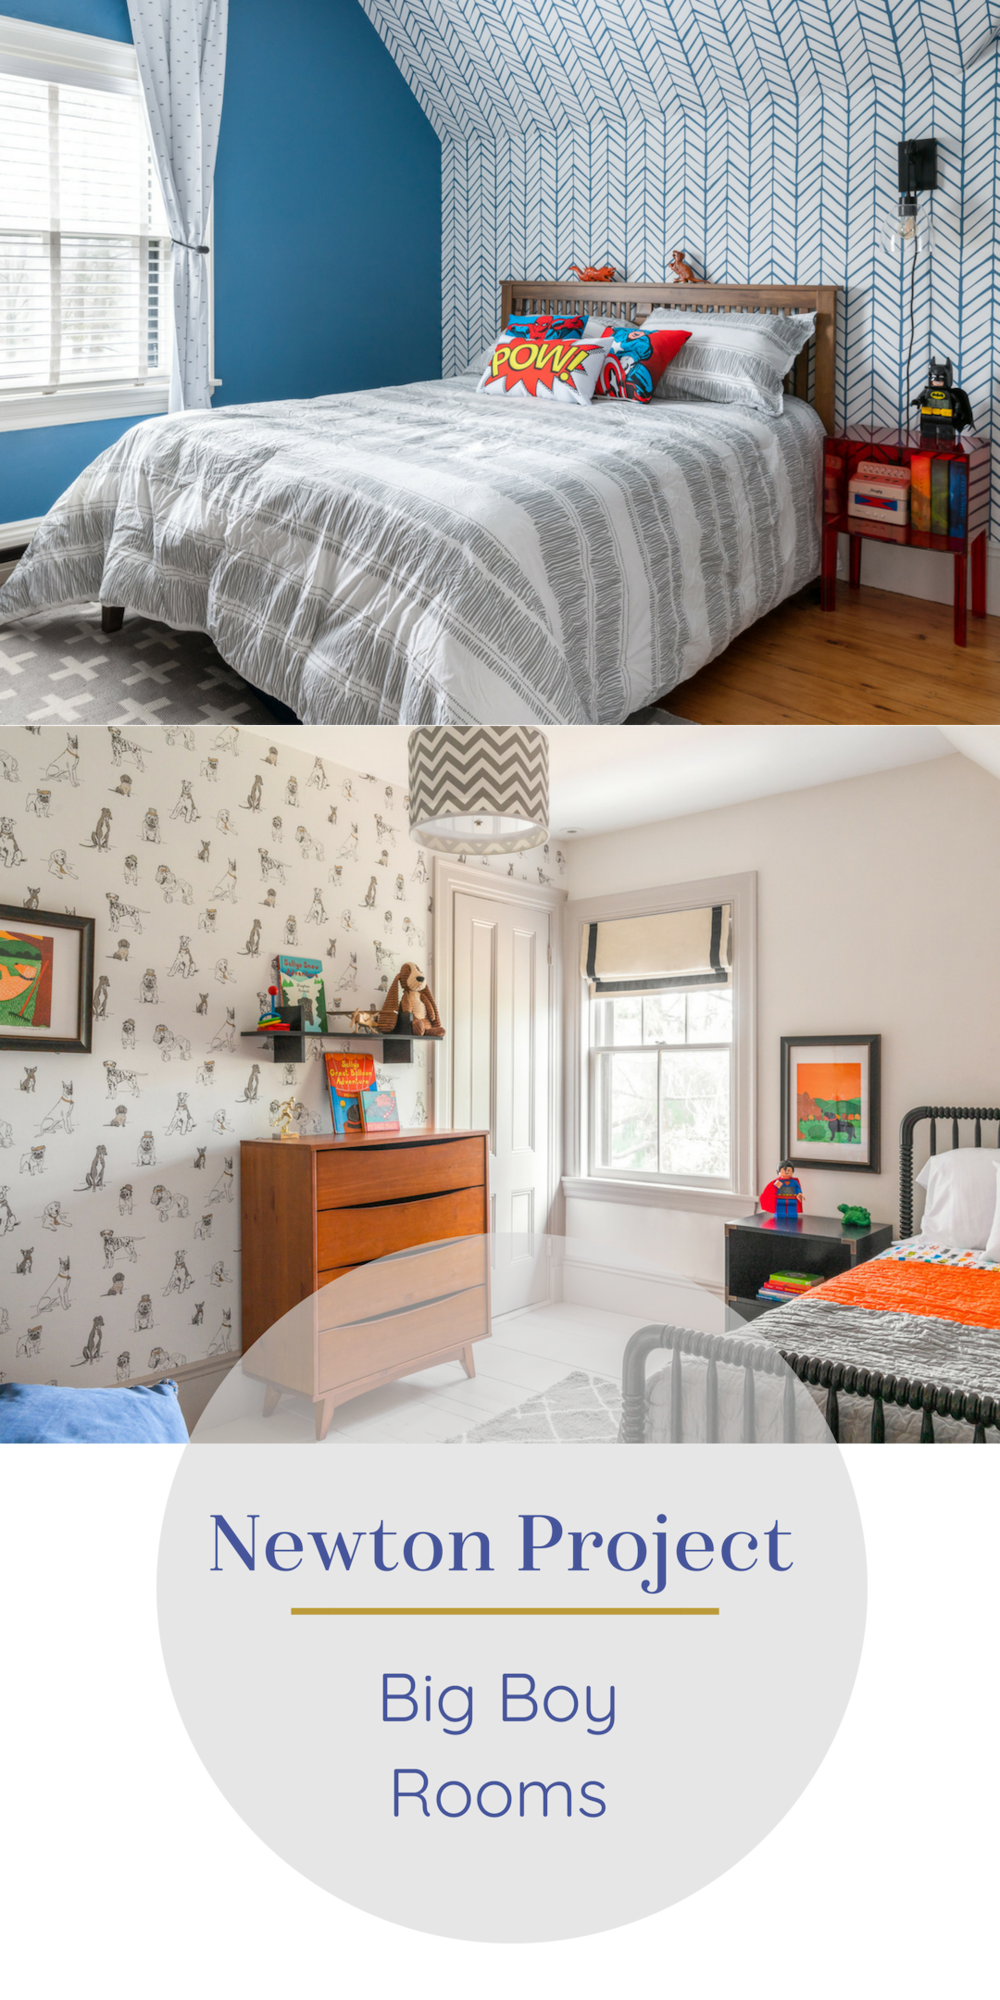 Boo & Rook bridgewater massachusetts interior design big boy rooms for brothers red white and blue superhero and vintage puppy dog theme blue green and orange.png